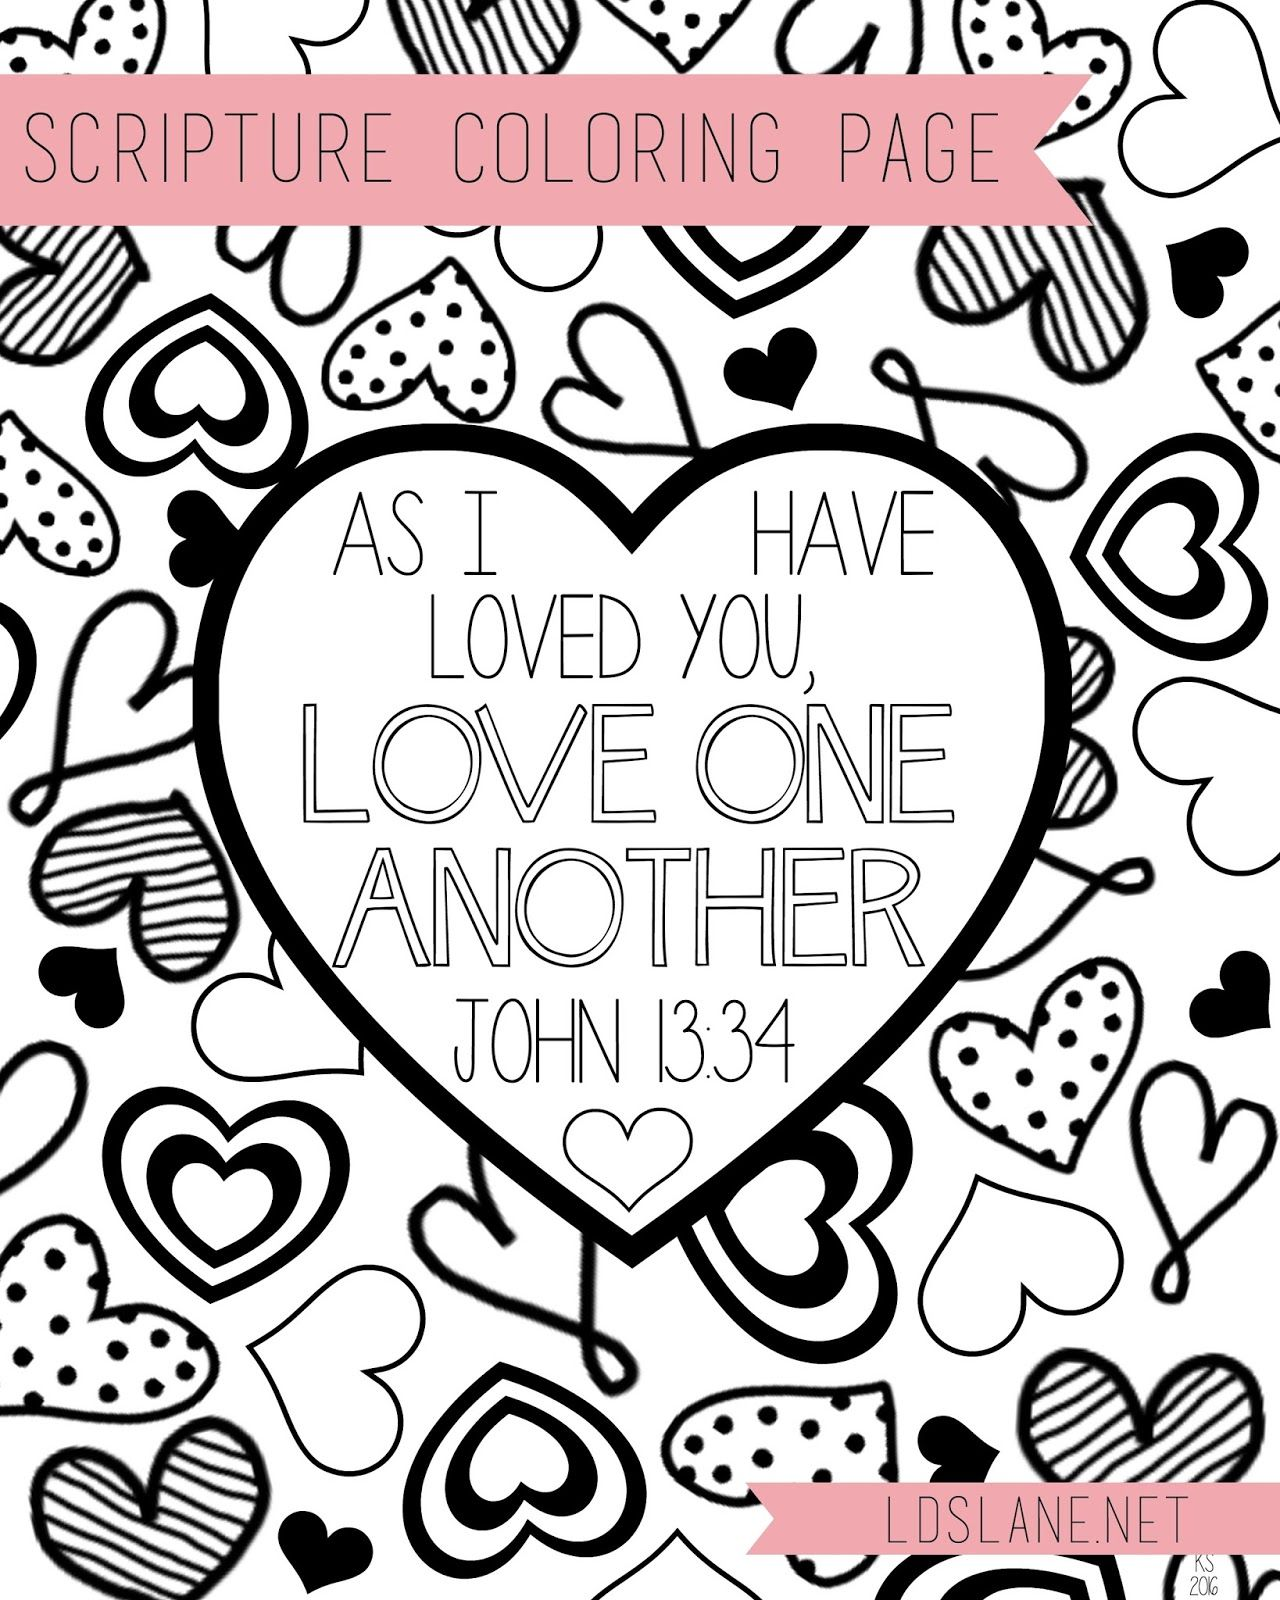 Scripture Coloring Page Love One Another